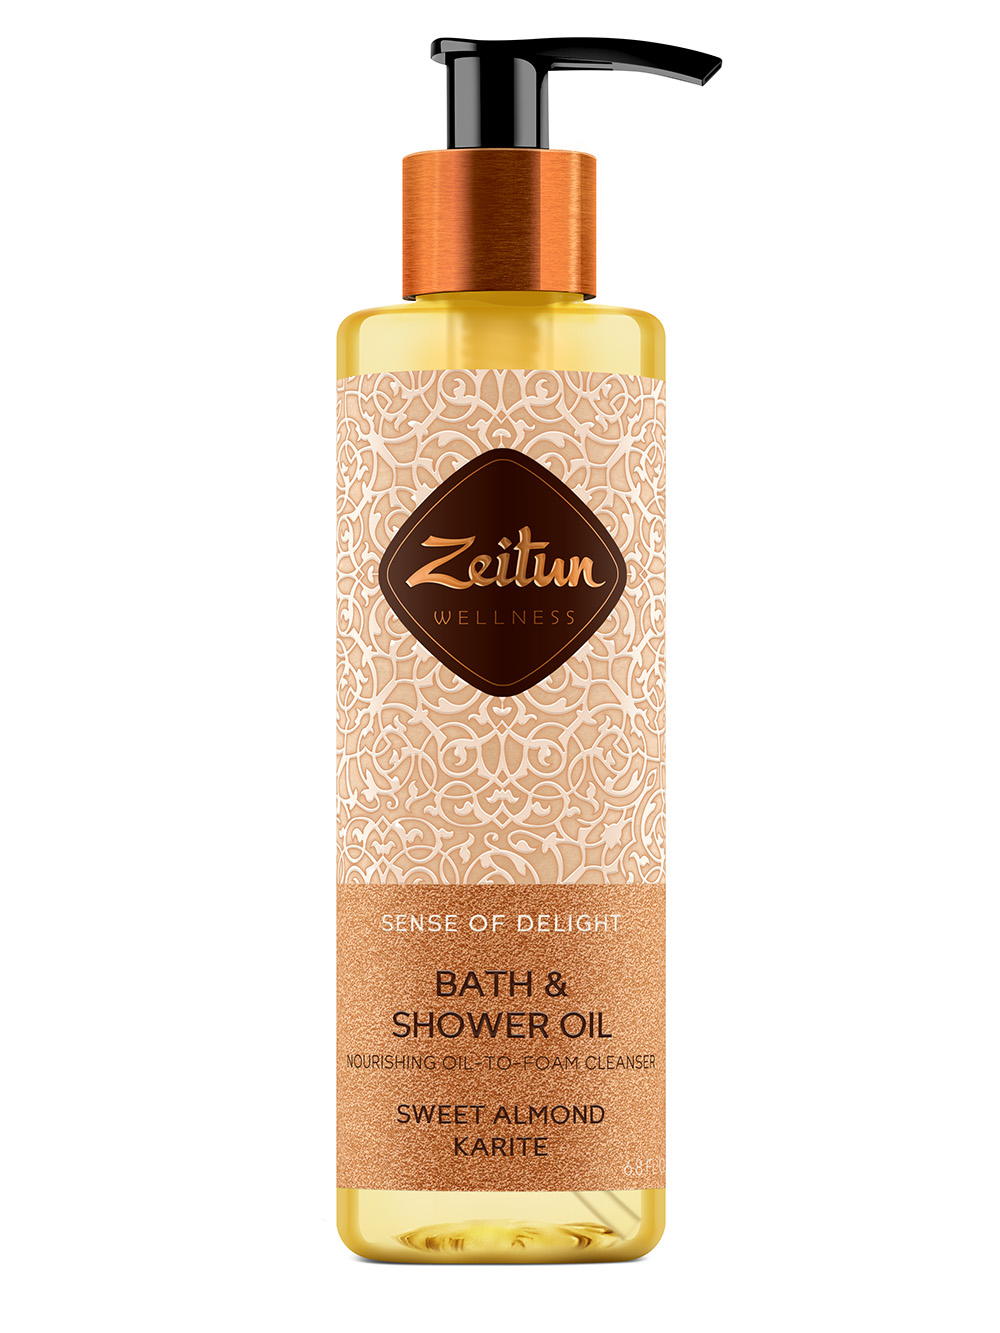 Sense of Delight Nourishing Bath & Shower Oil with Sweet Almond and Karit